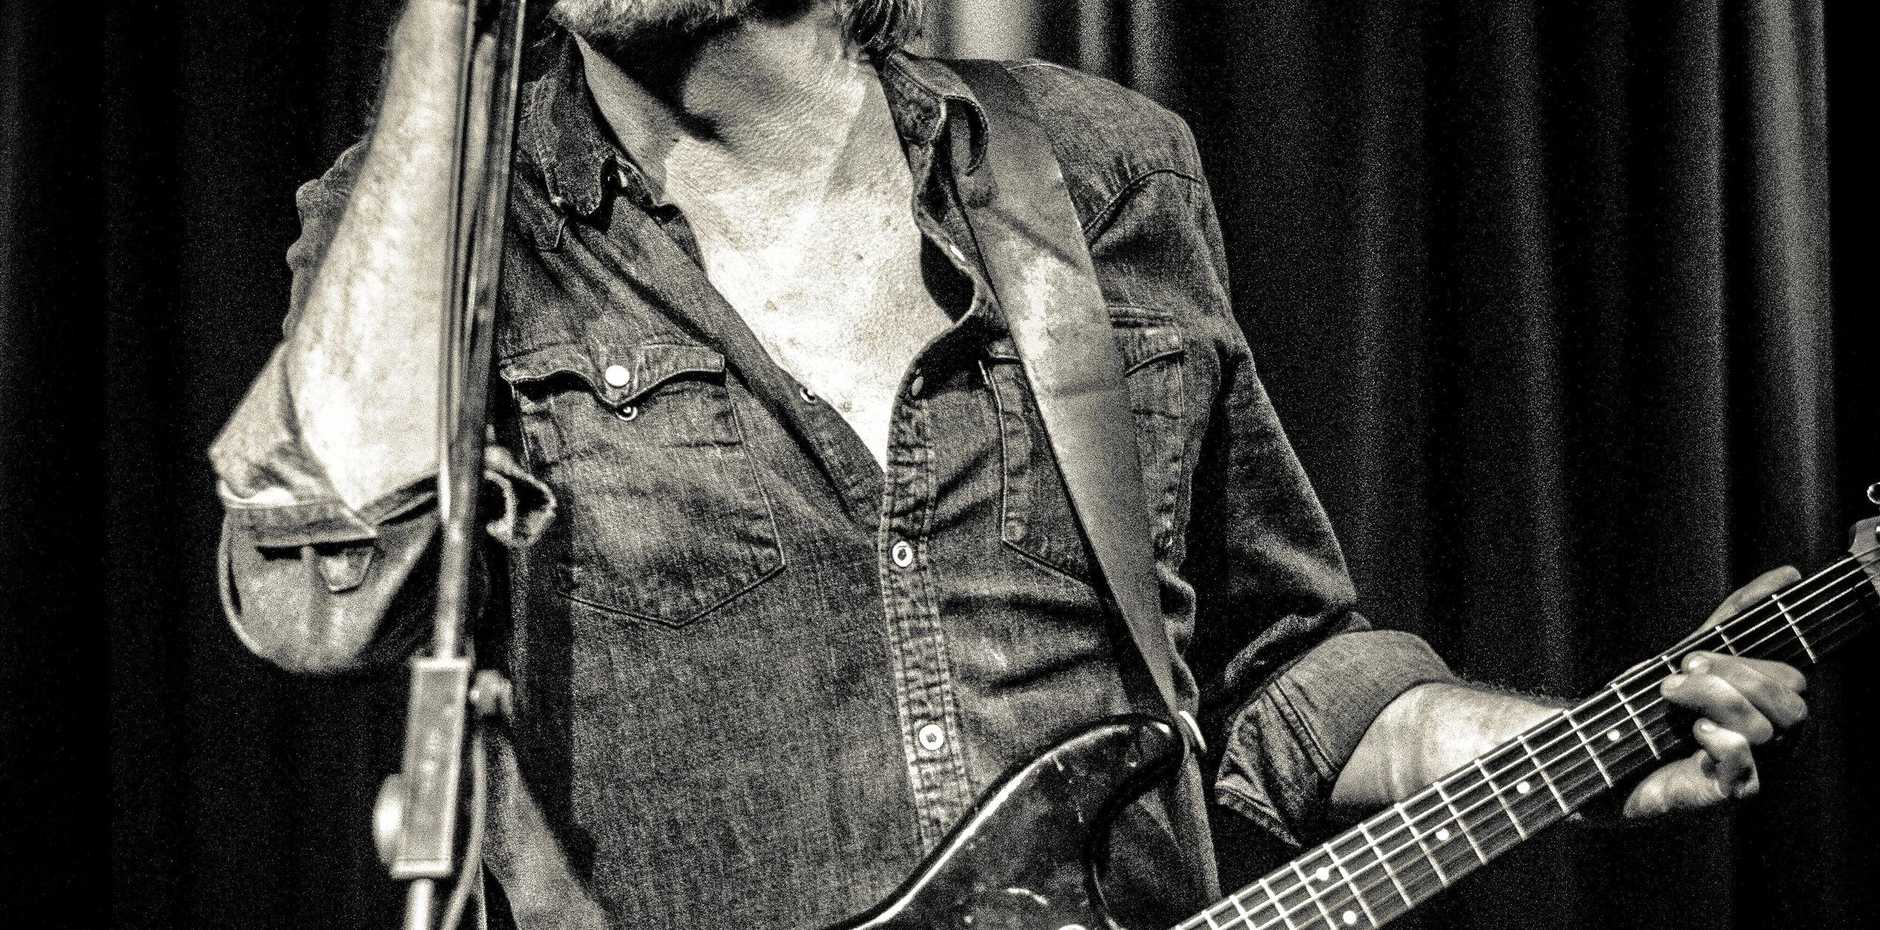 IN THE GROOVE: Australian music star Tex Perkins, known for his work with   The Cruel Sea, is headed to the Gympie Muster with Matt Walker and The Fat Rubber Band.